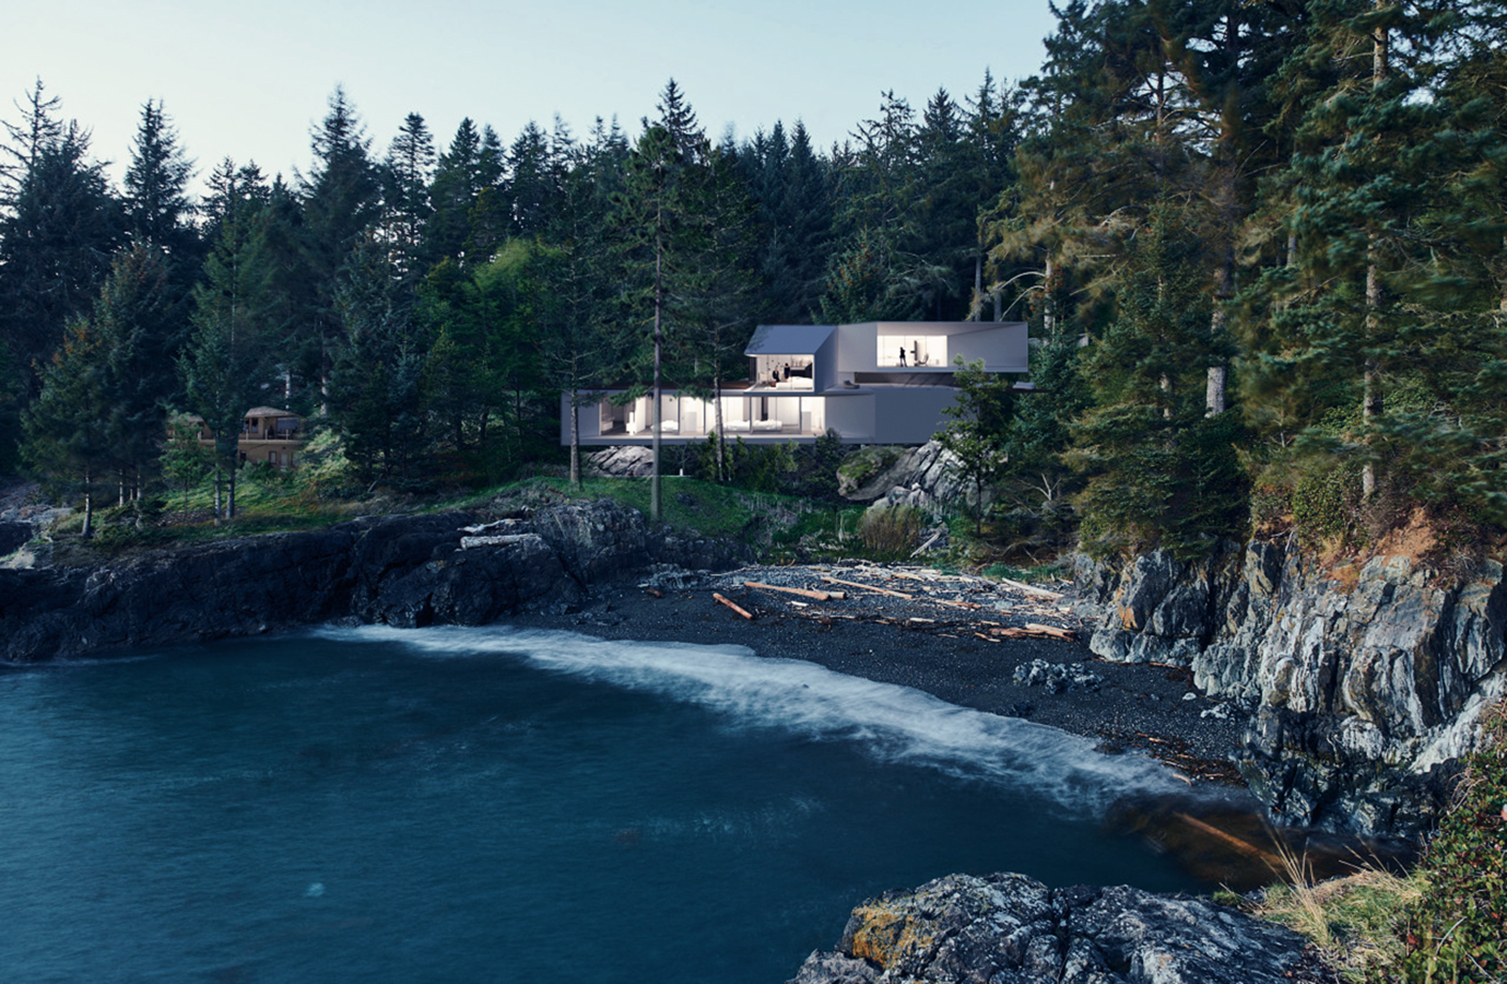 a seaside home on a cliff surrounded by pine trees